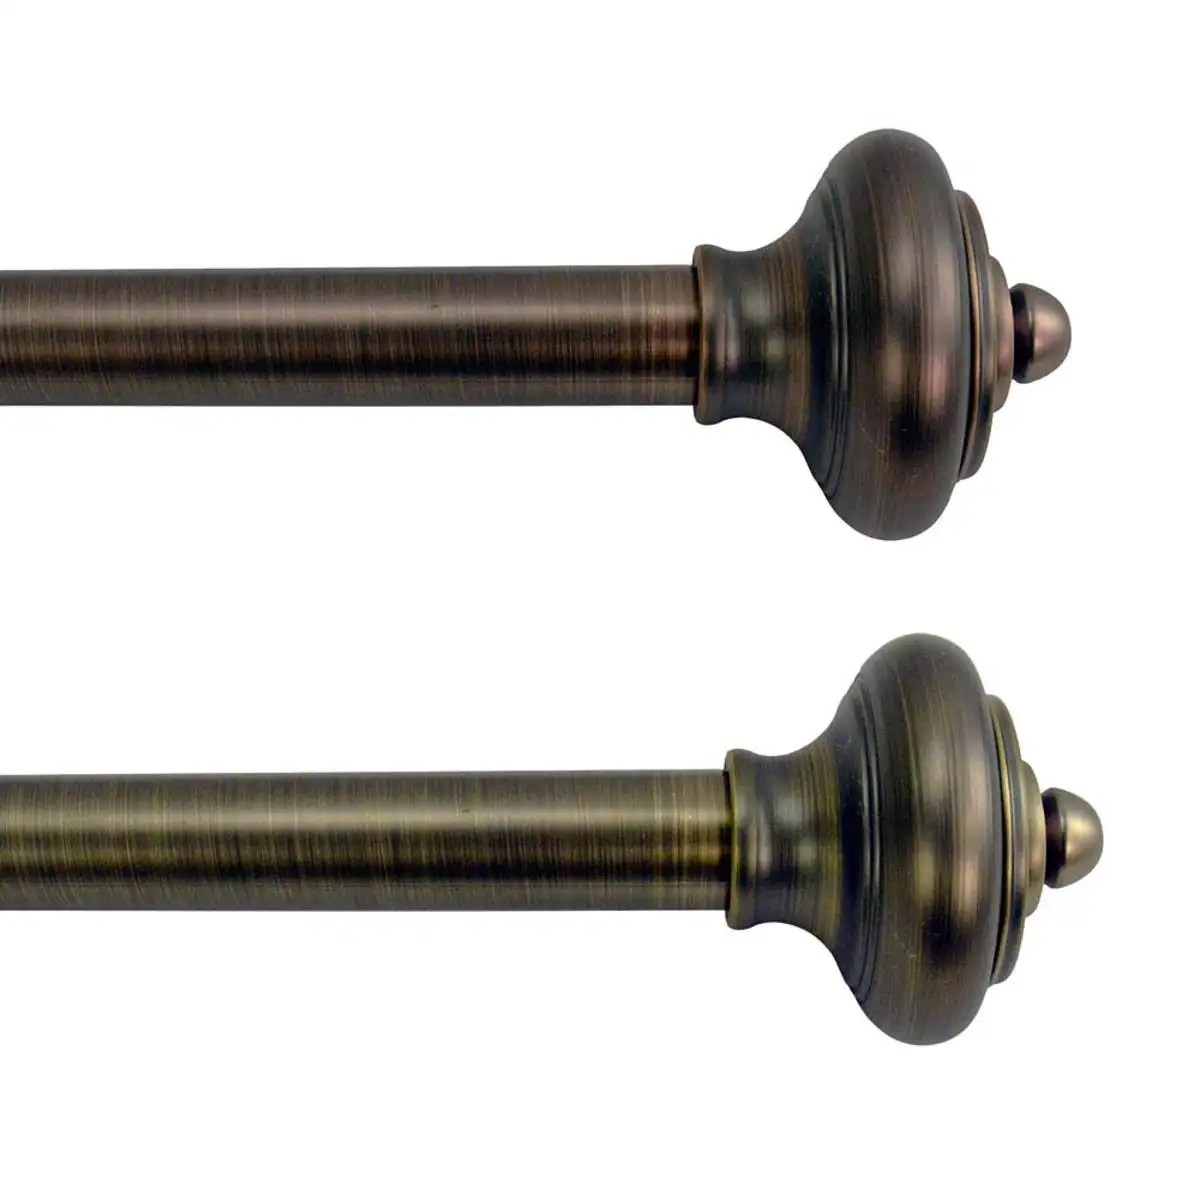 Adjustable Curtain Rods Lexington Adjustable Curtain Rod Collection With Royale Finial